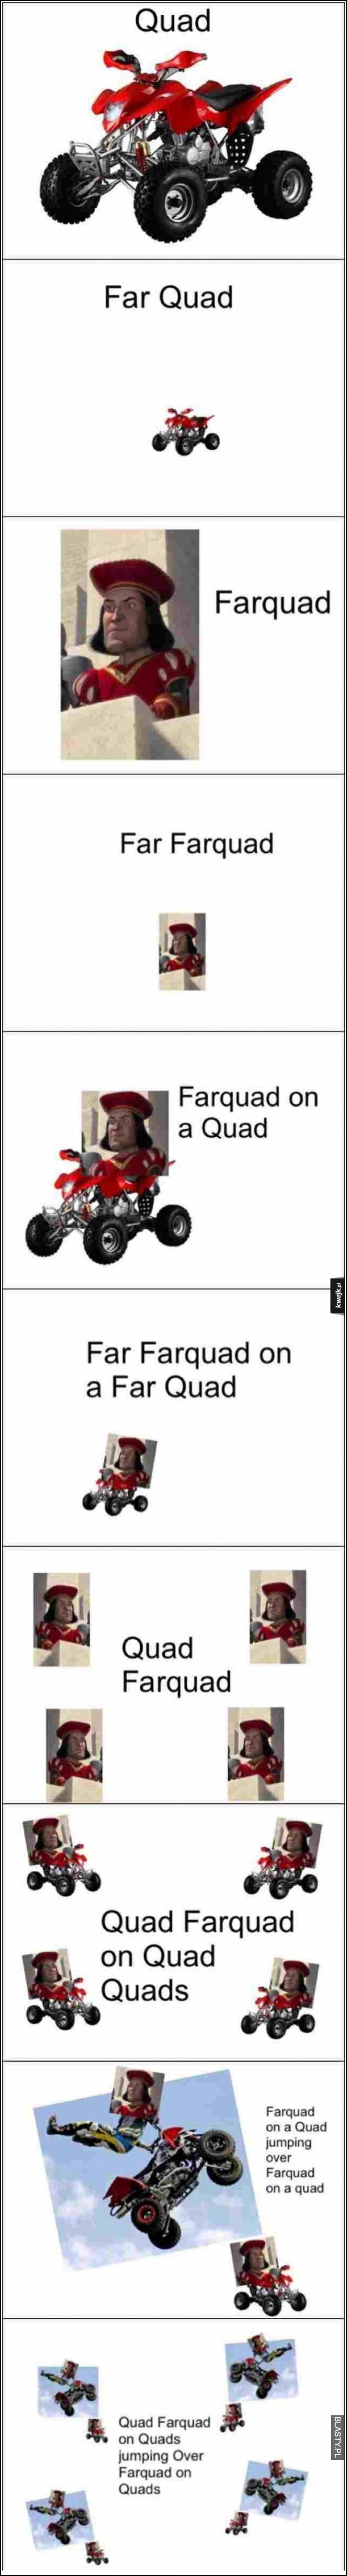 Far farquad on far quad